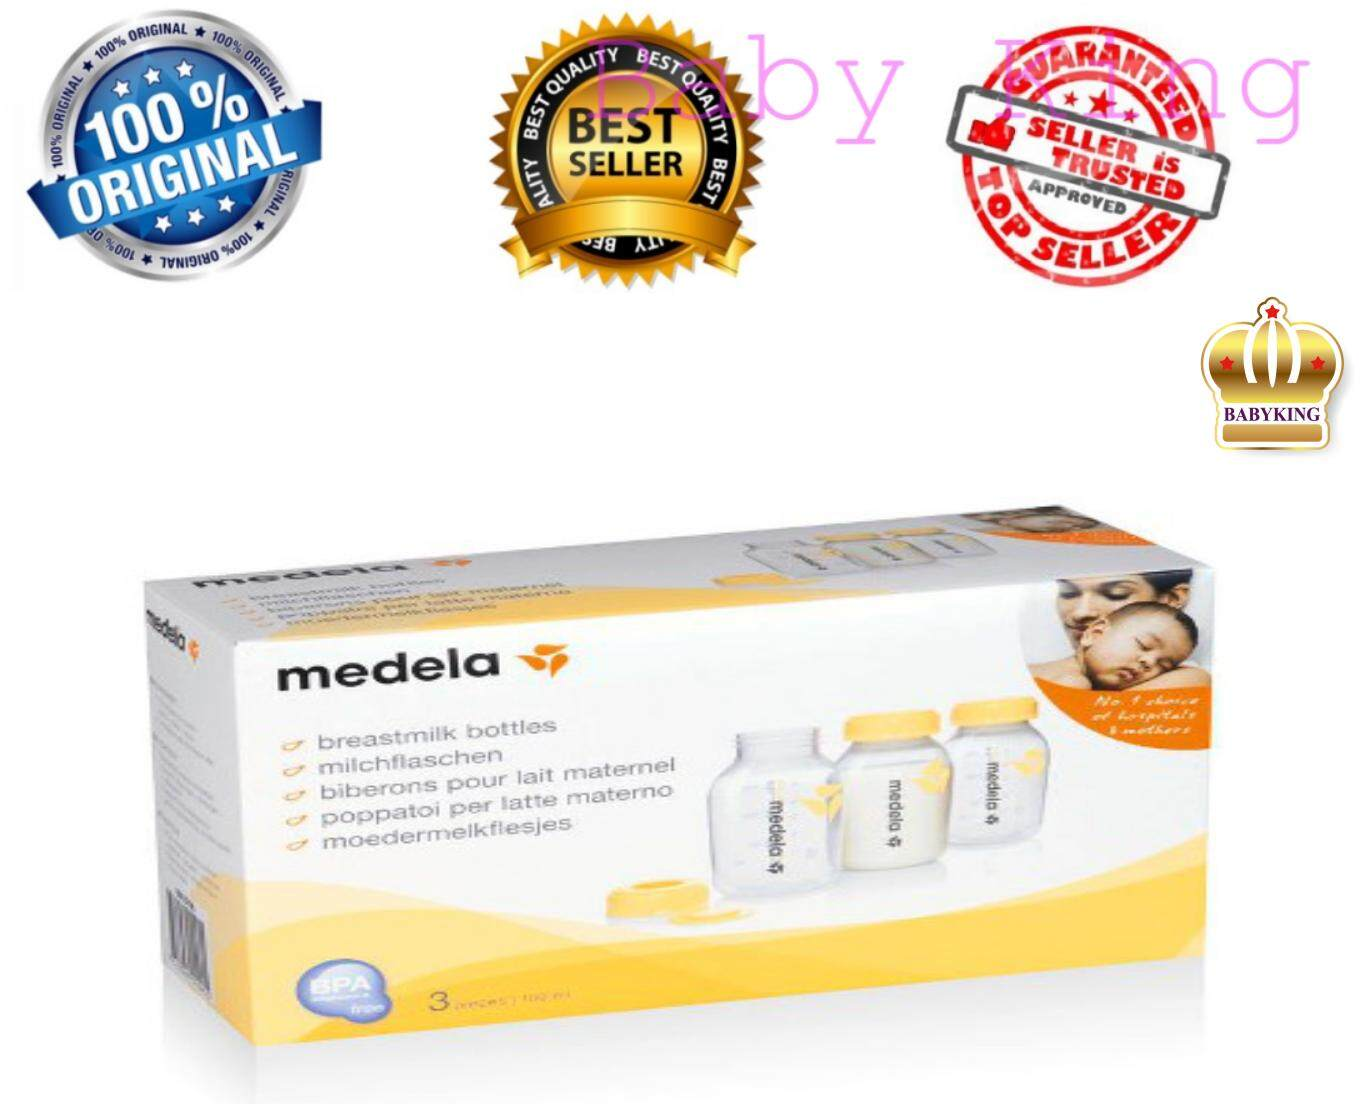 Medela Products For The Best Price In Malaysia Soft Cup Feeder Original Breast Milk Bottles 150ml 3 Pcs